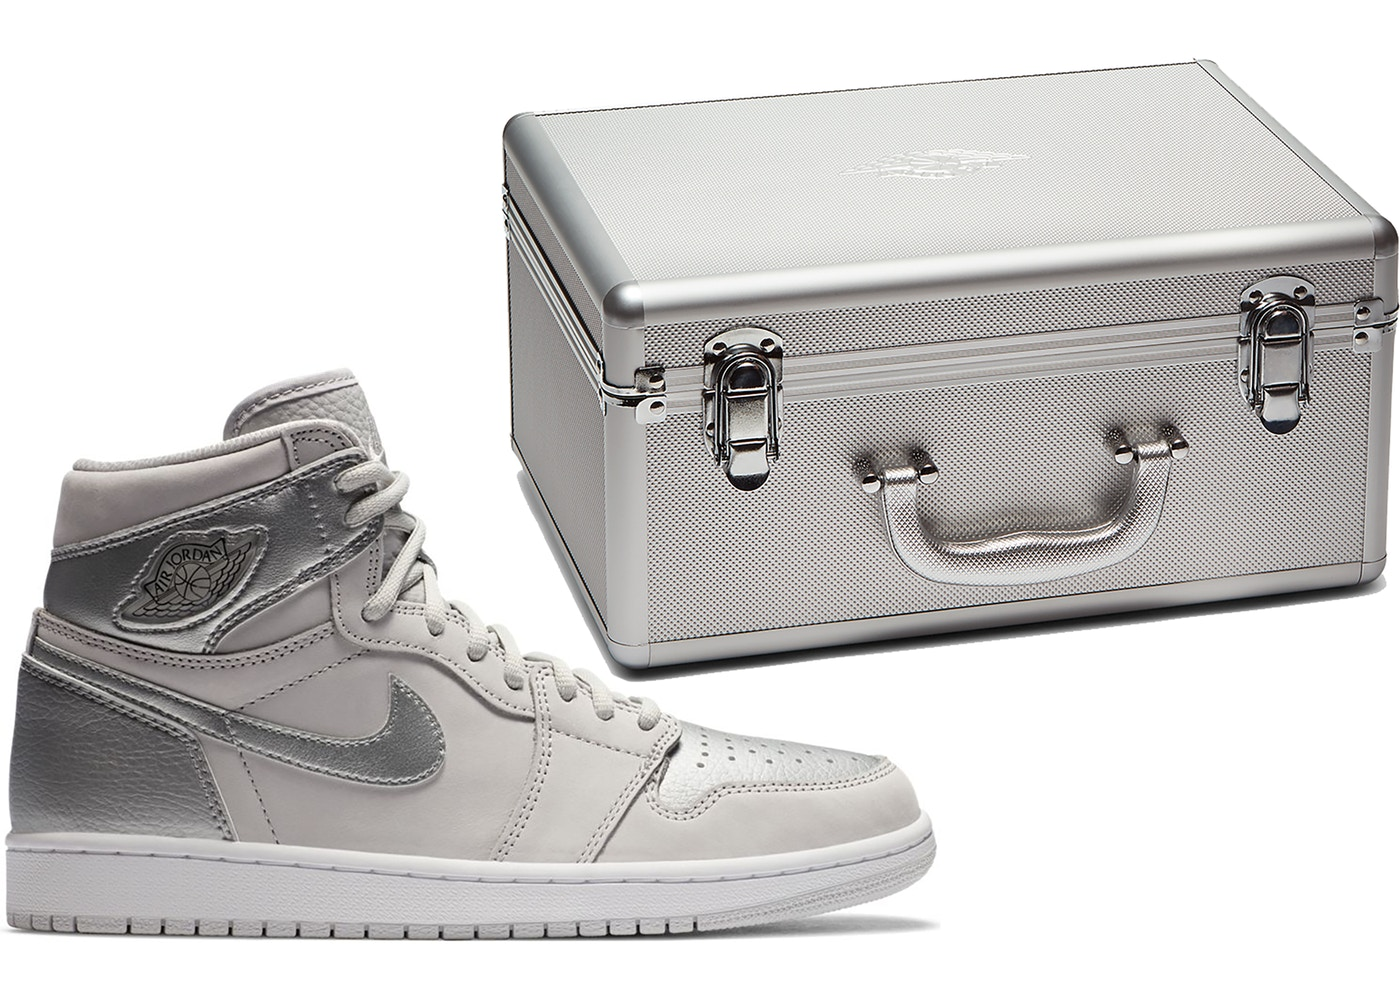 Jordan 1 Retro High CO Japan Neutral Grey (Suitcase)